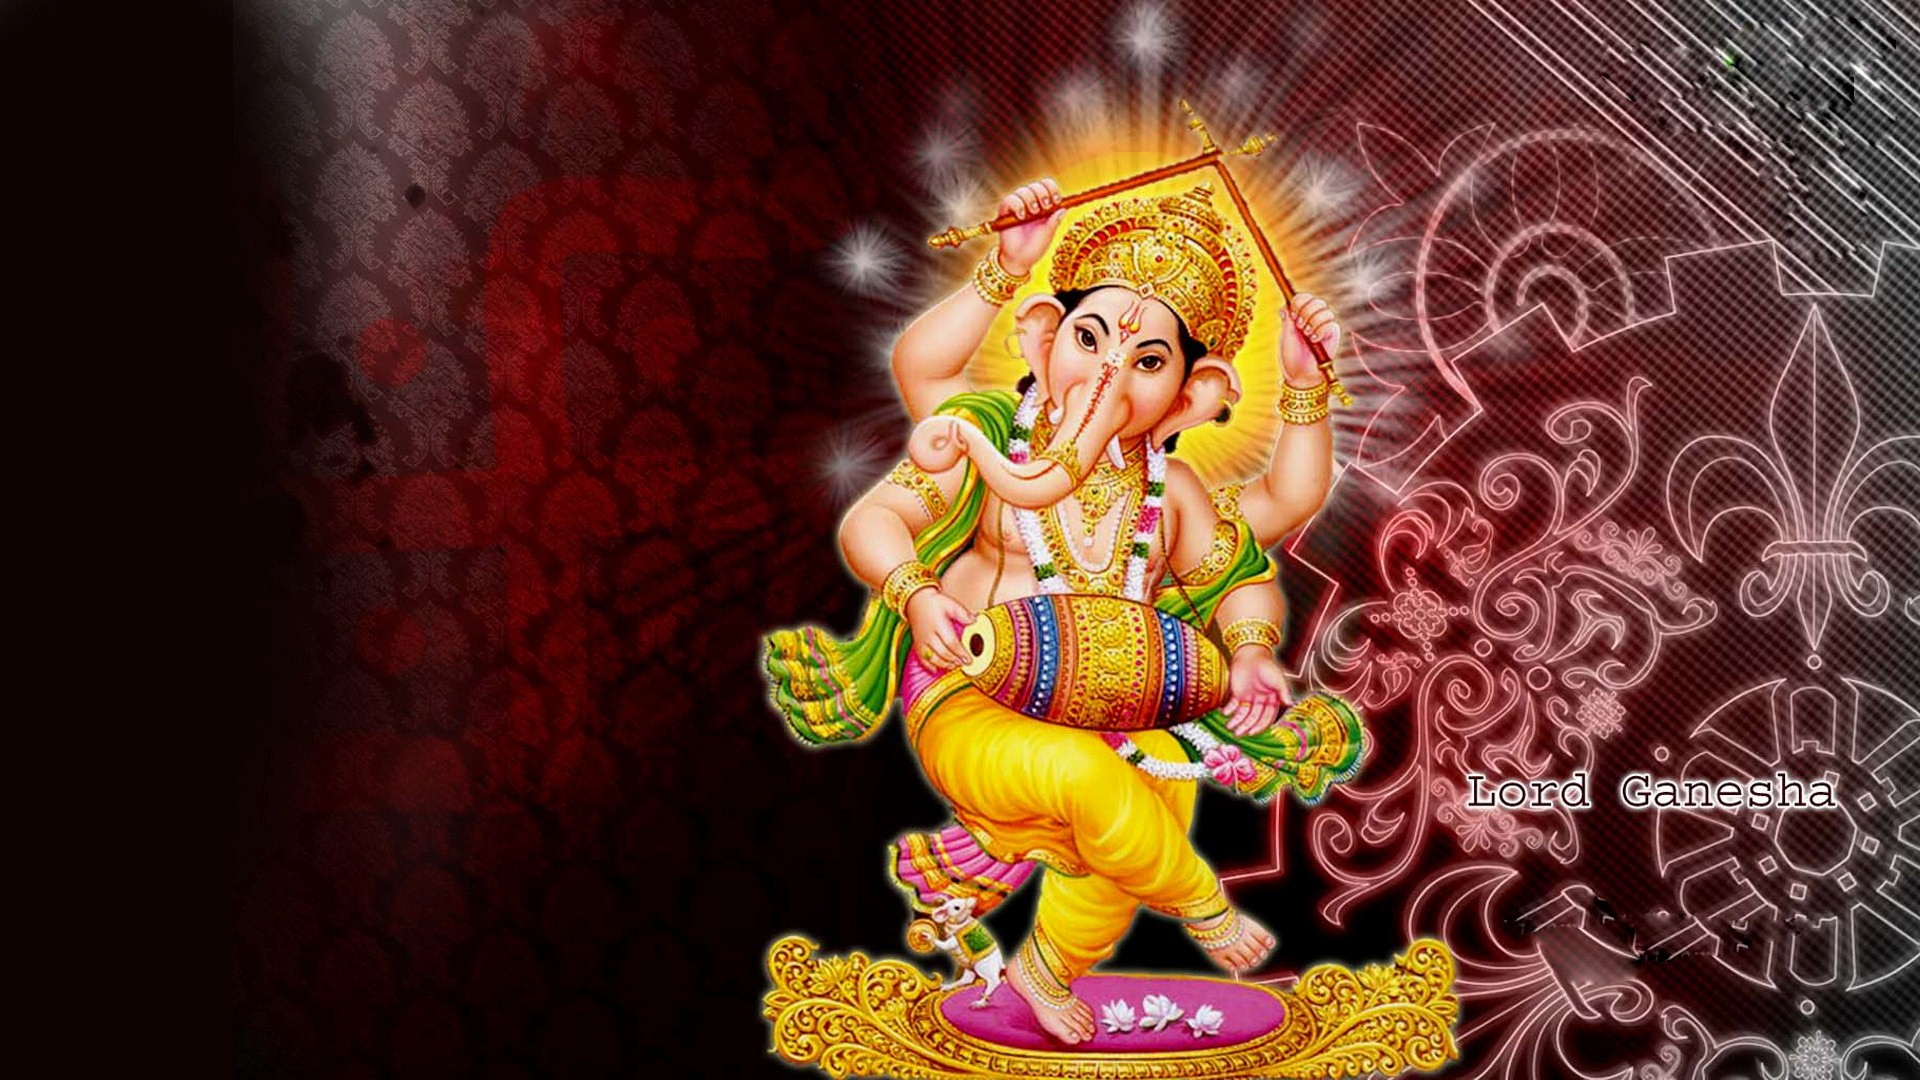 Lord Ganesha Indian God HD Desktop Wallpapers HD Wallpapers 1920x1080